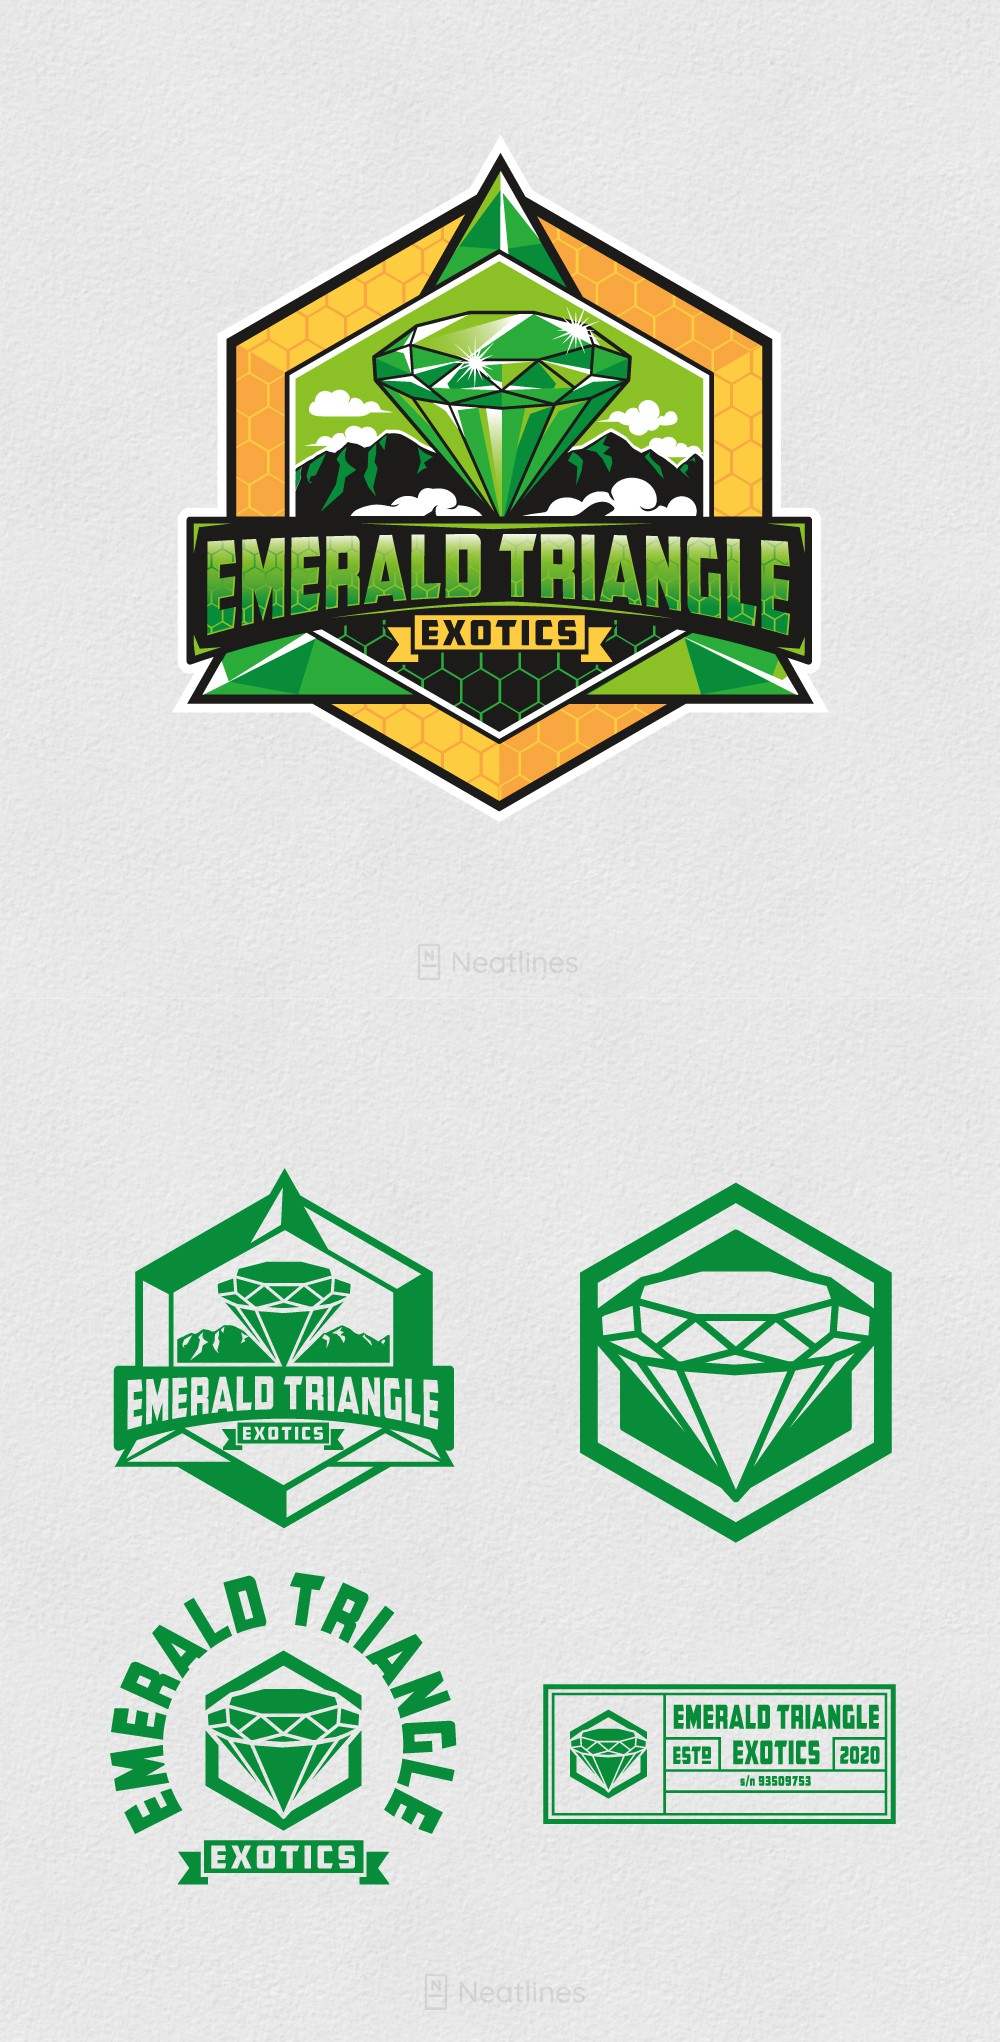 Emerald Triangle Exotics